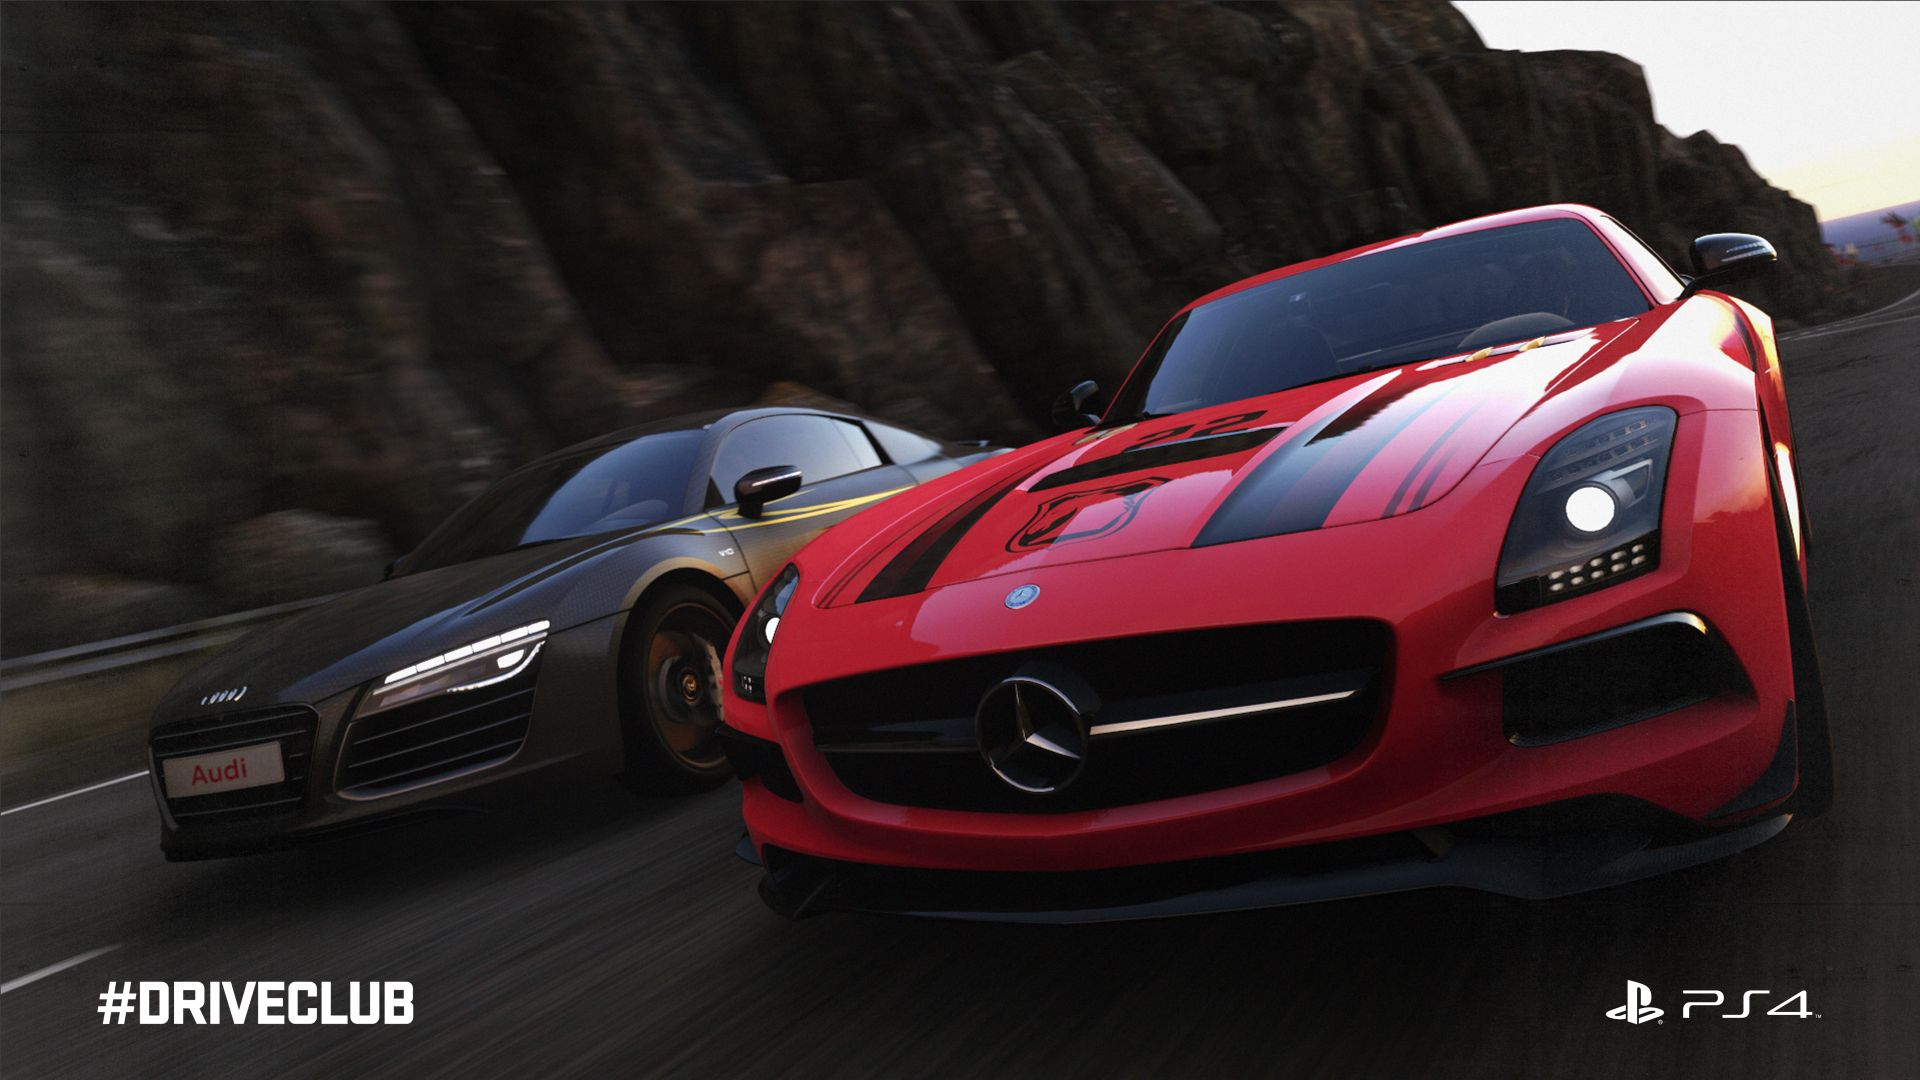 Driveclub-0610